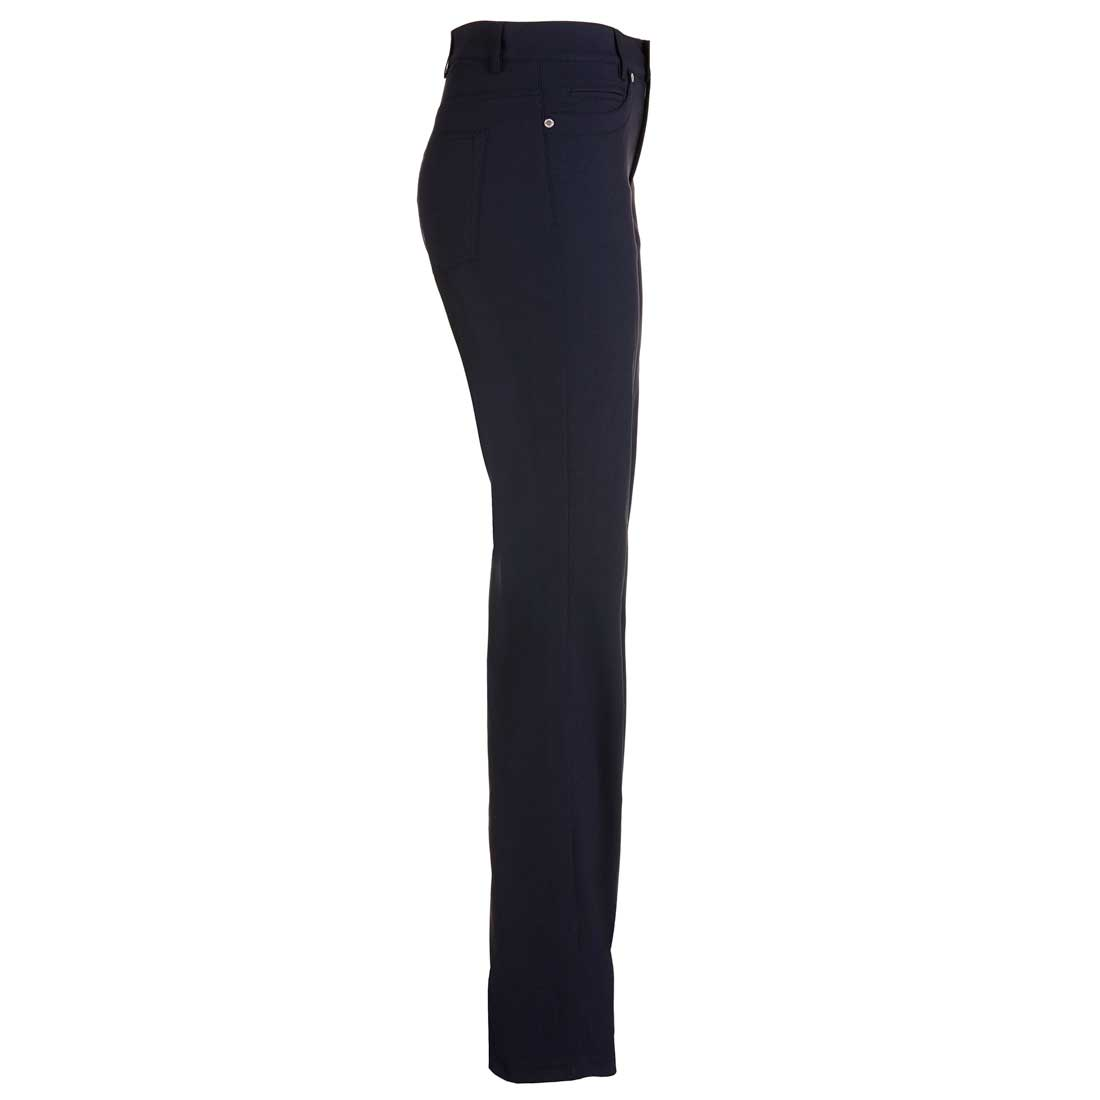 Sofiguard® Damen Stretchhose in Slim Fit mit UV-Schutz